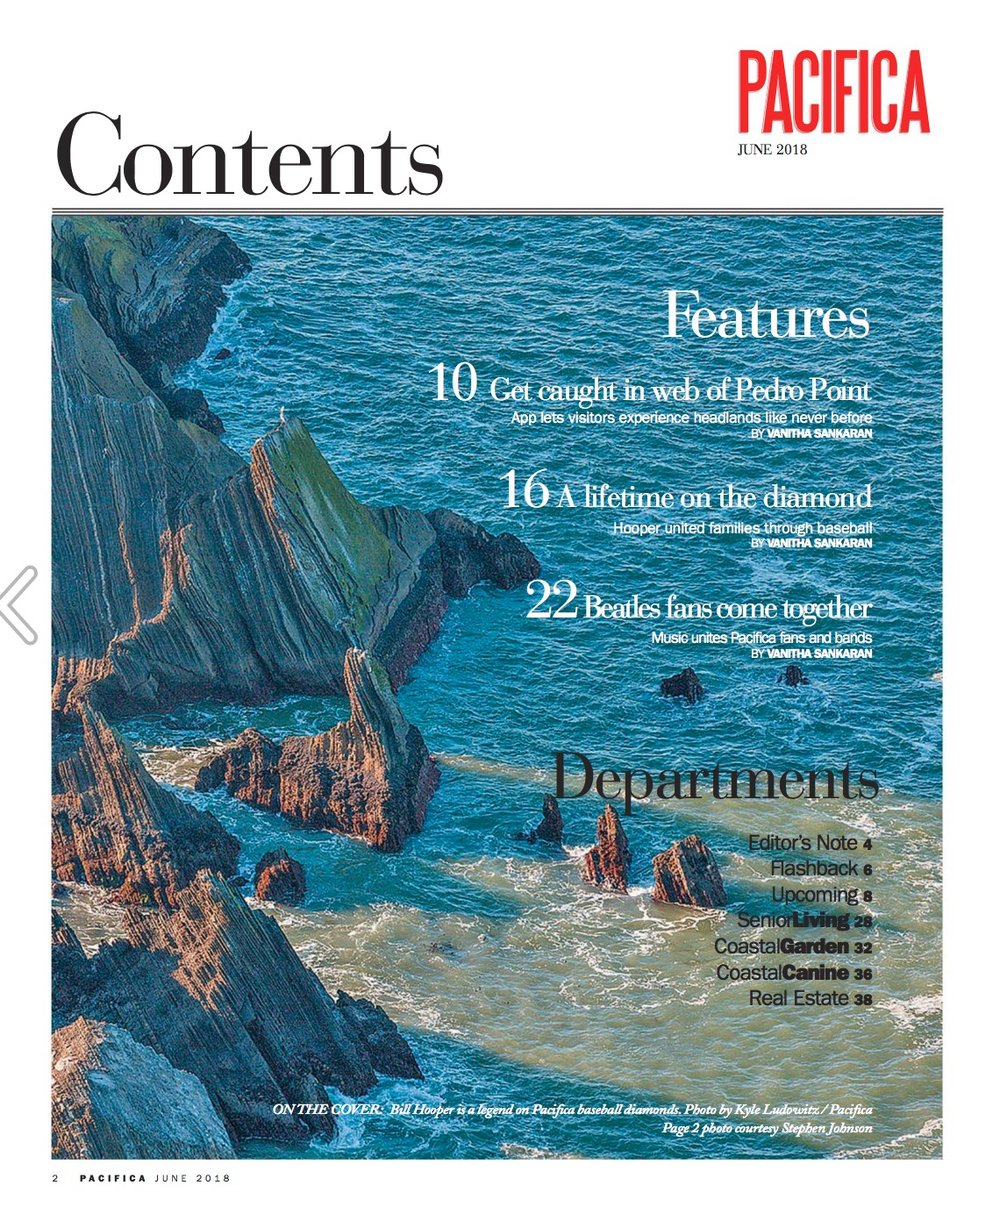 pacifica-mag-may-2018-contents.jpg